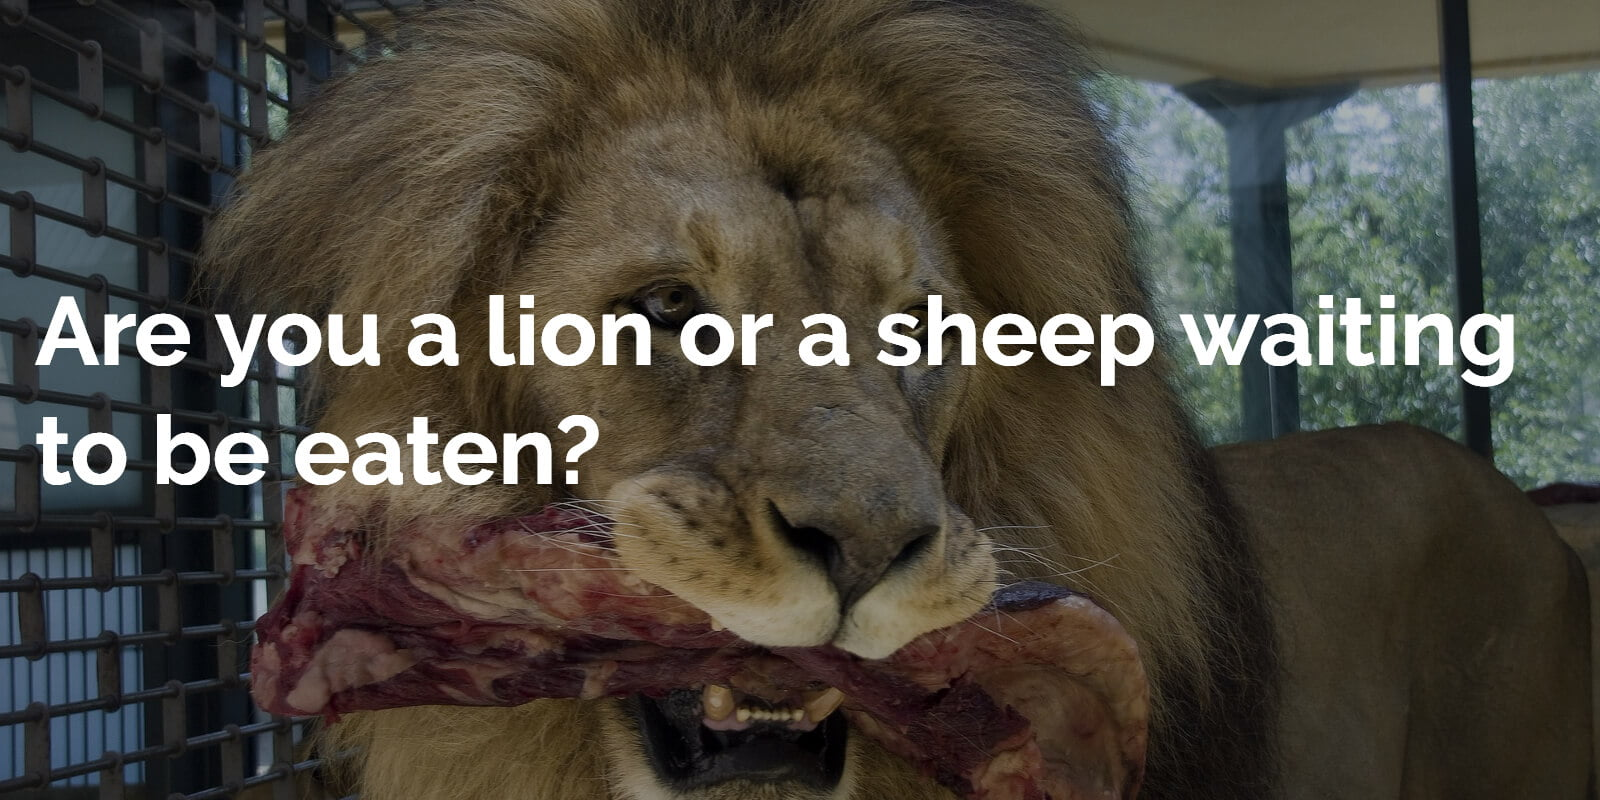 Are you a lion or a sheep waiting to be eaten